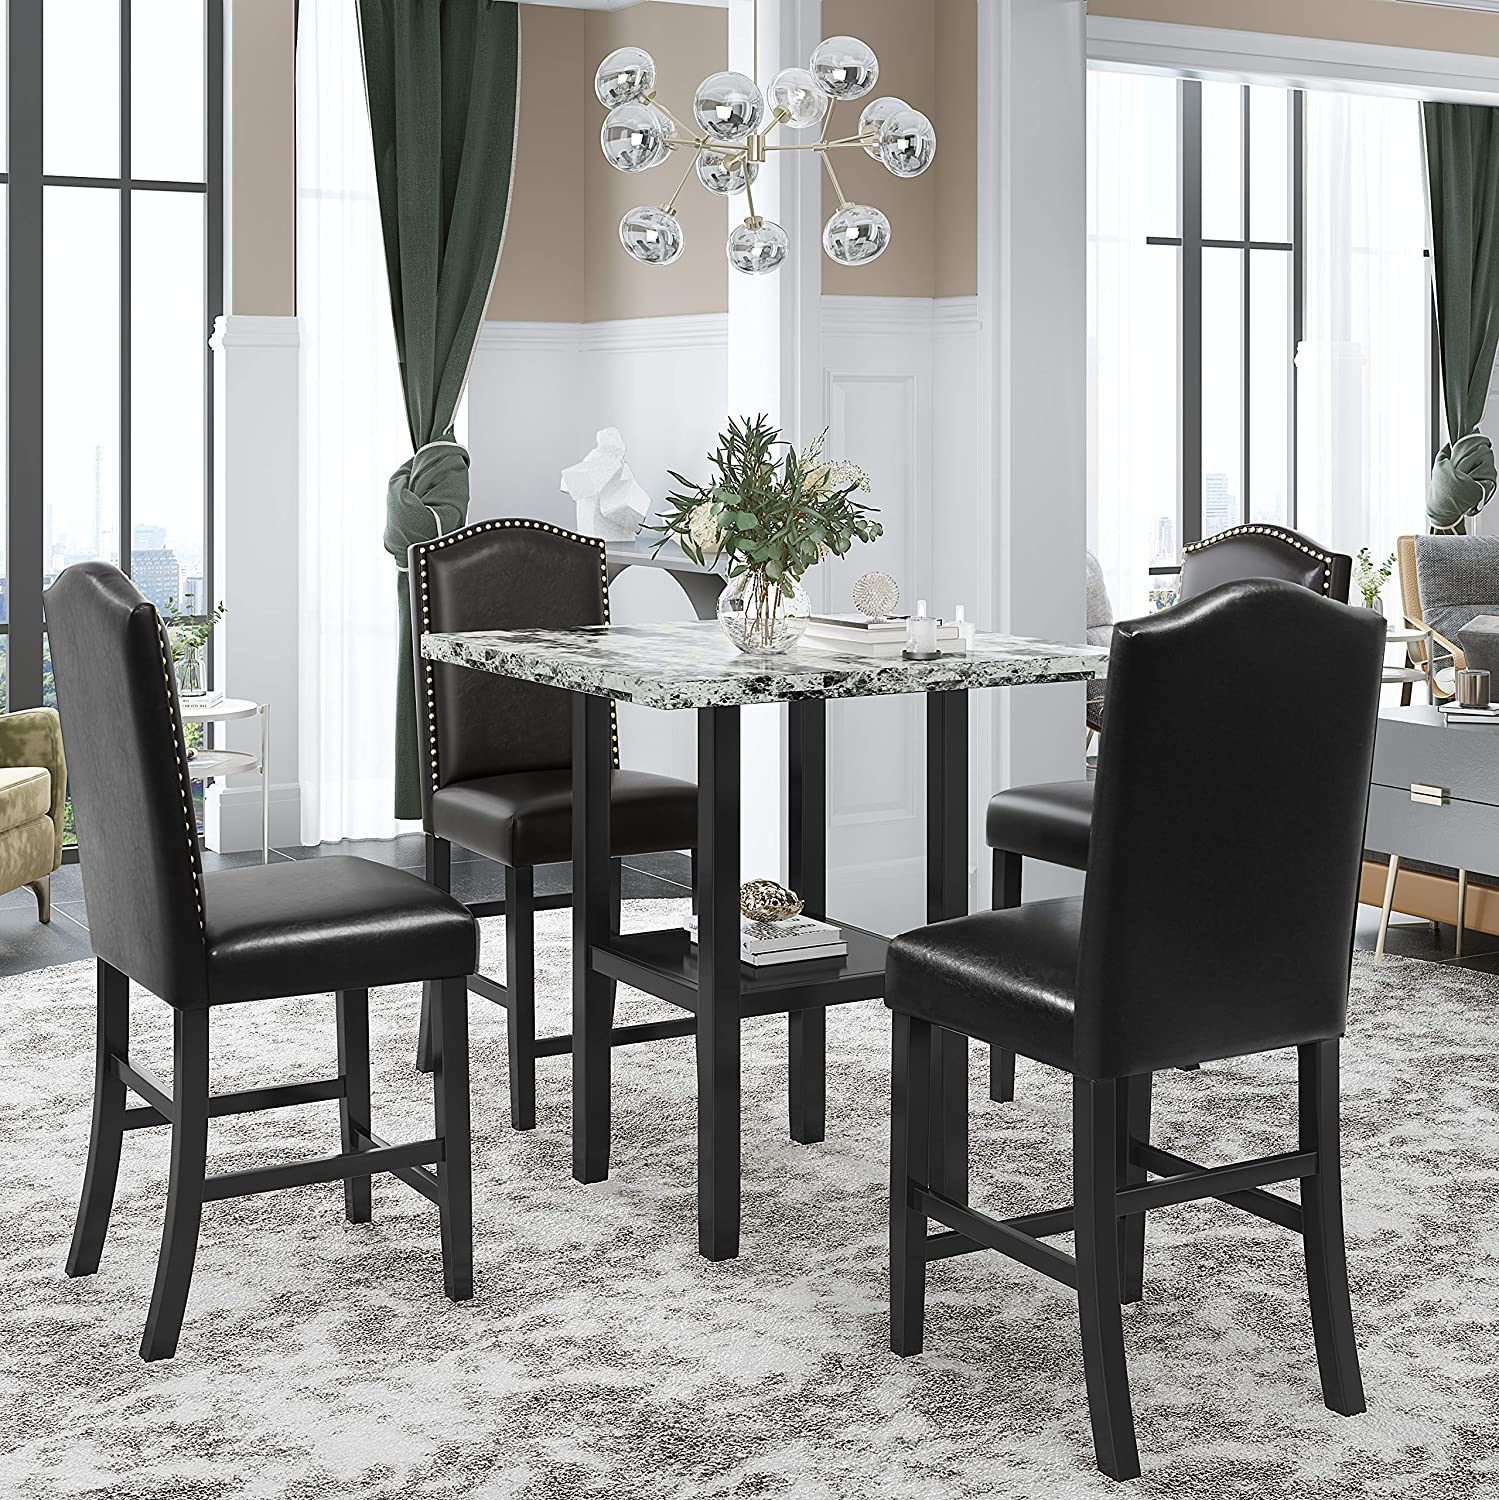 Harper Max 71% OFF Bright Designs 5-Piece Dining Set with Marbl Very popular Faux Table